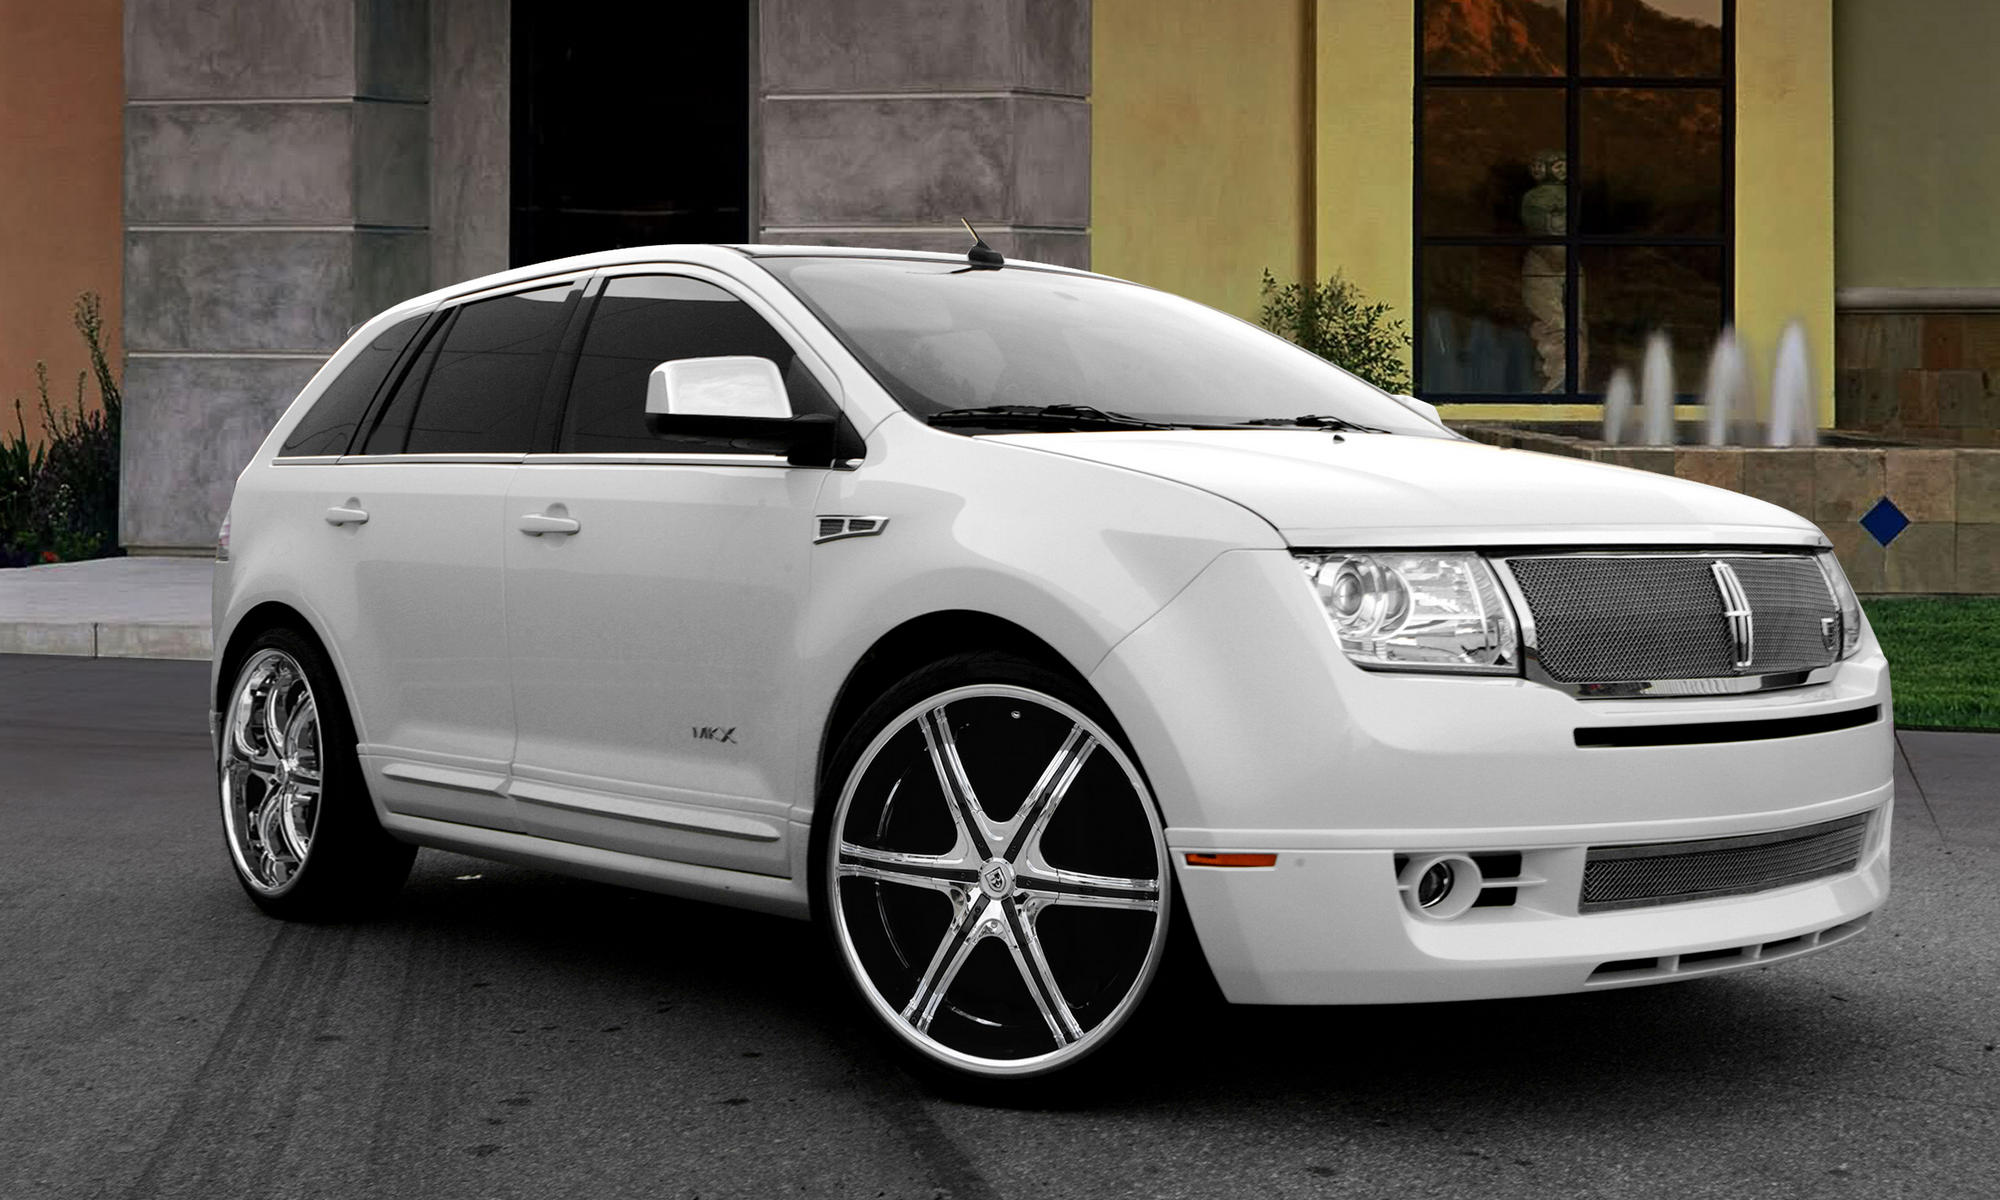 2016 Lincoln Mkt >> 2009 LINCOLN MKX - Image #2